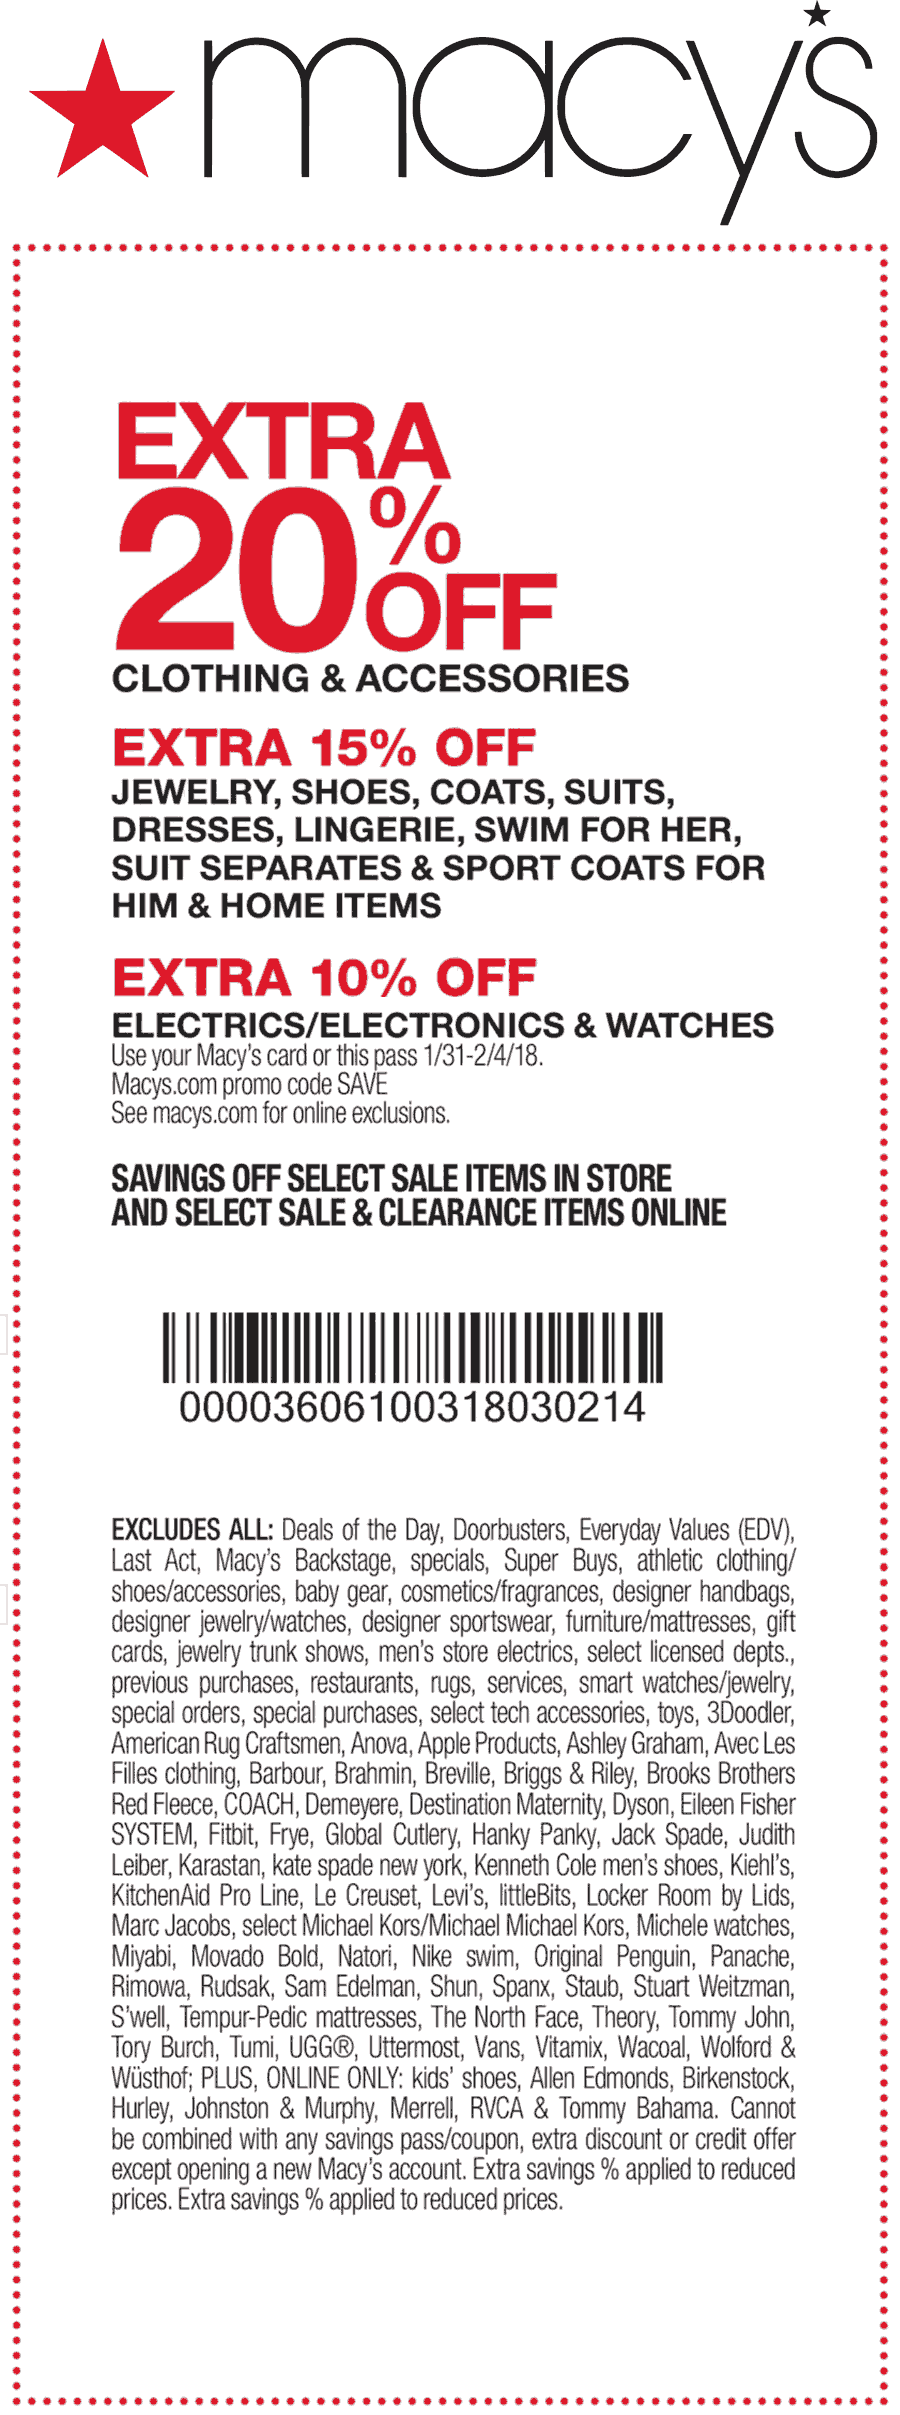 Macys Coupon August 2018 Extra 20% off at Macys, or online via promo code SAVE